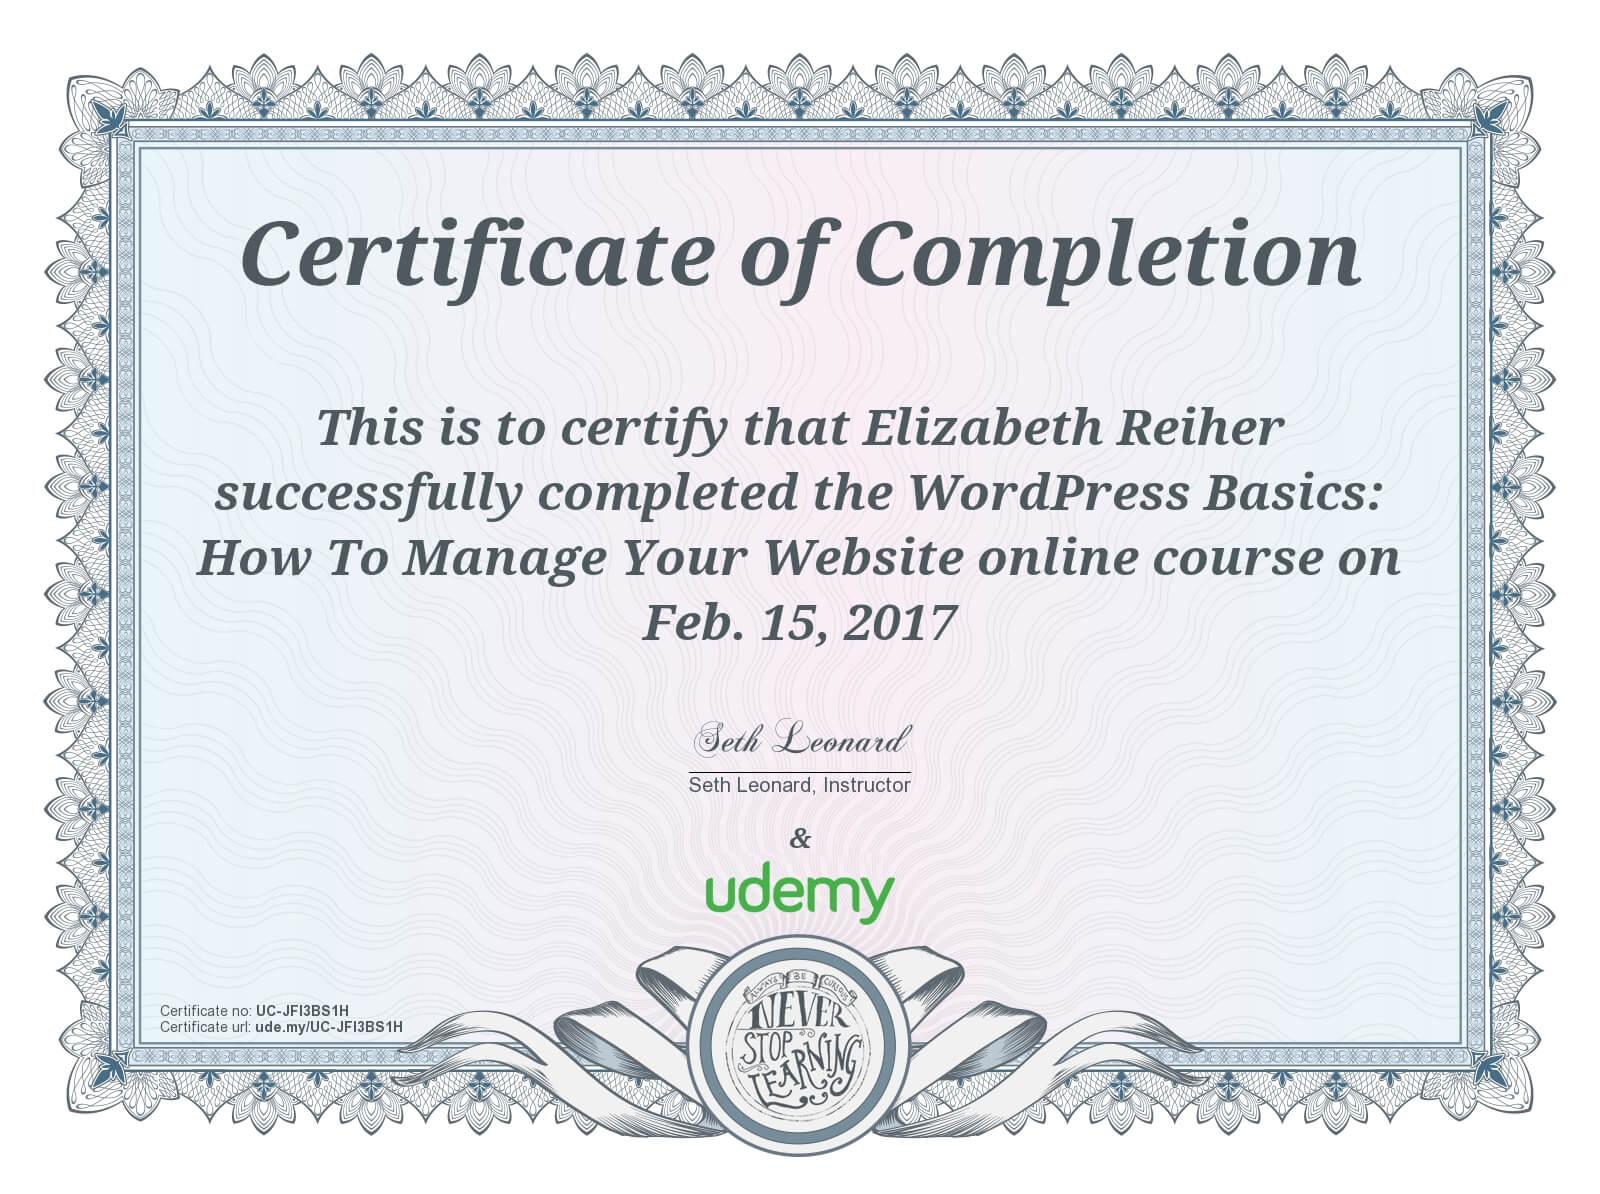 WordPress Basics Udemy Course Completion Certificate